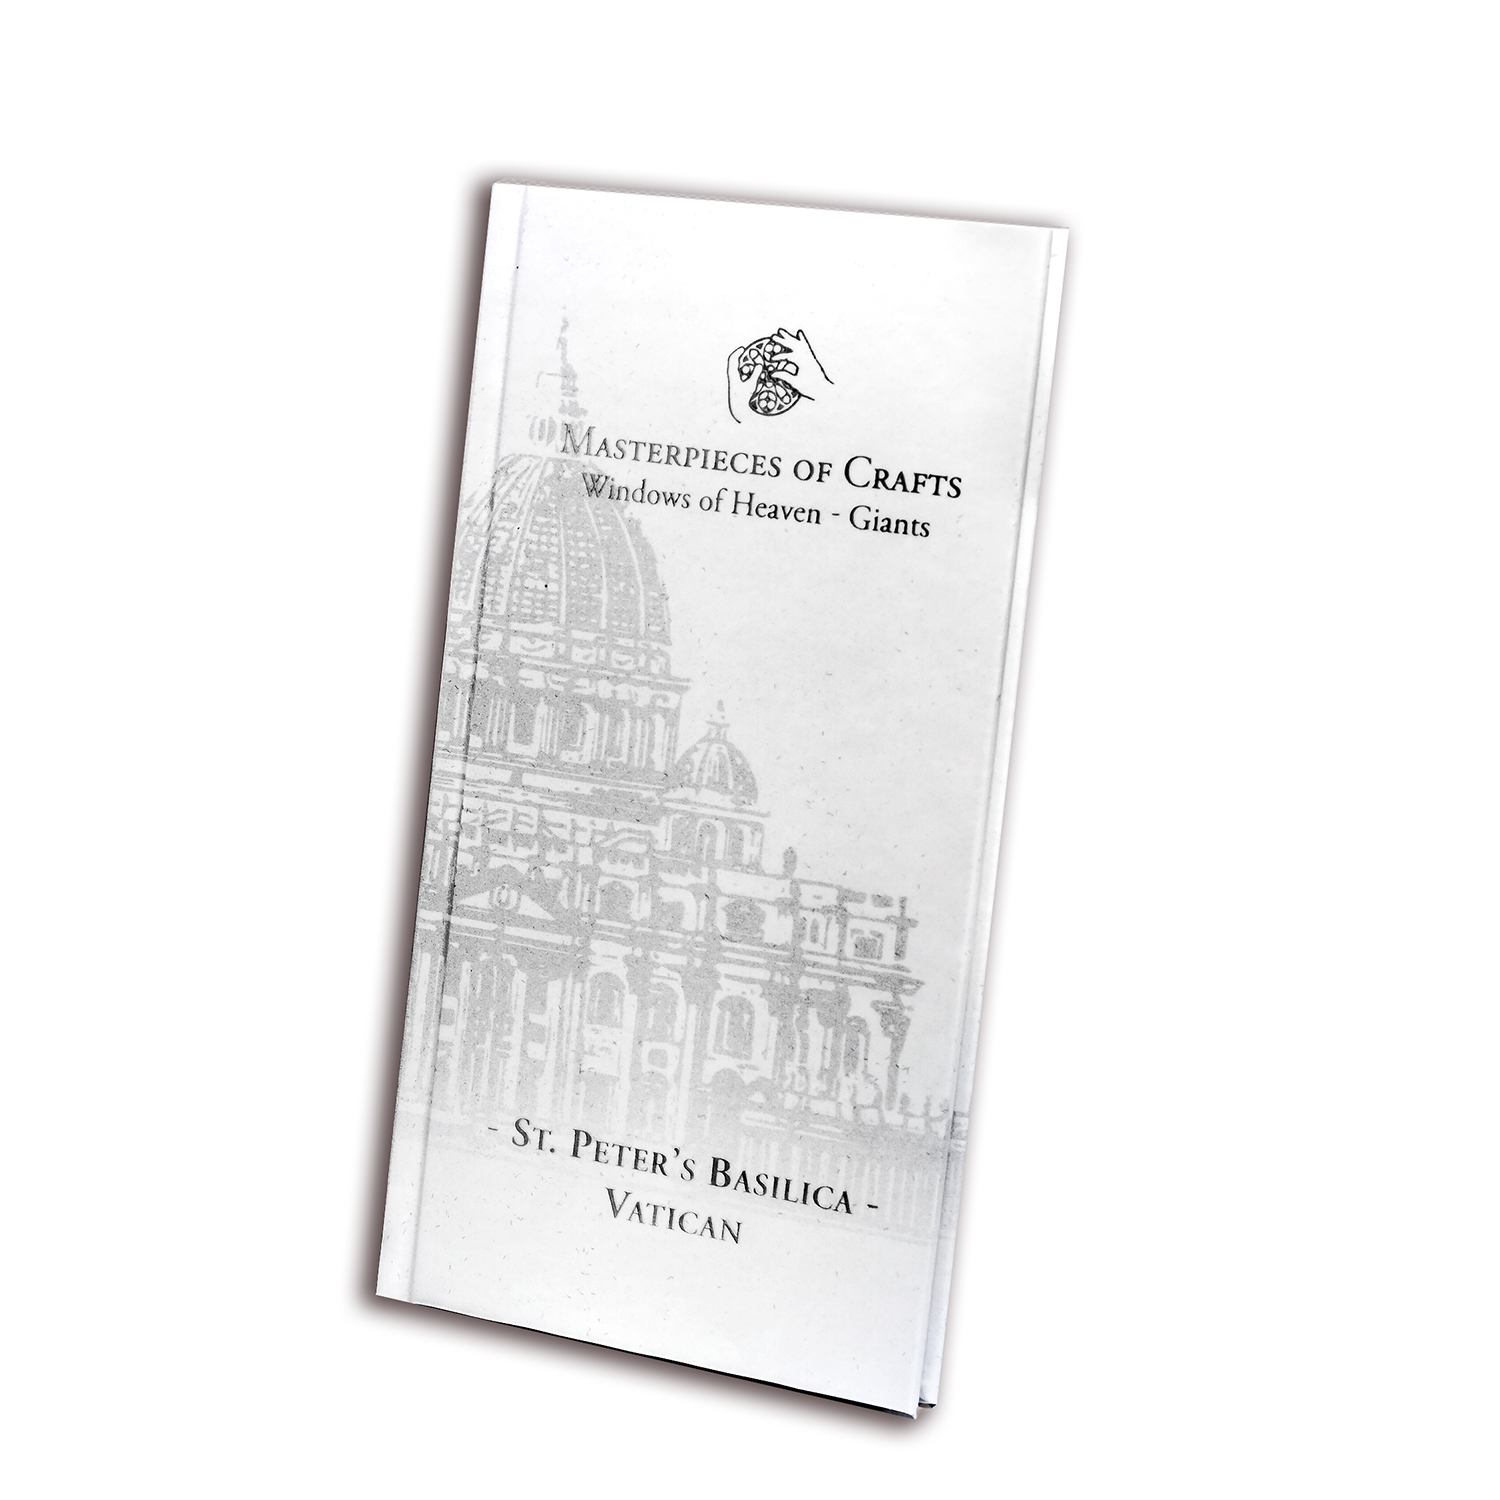 2016 Cook Isl 10 oz Silver Windows of Heaven St. Peter's Basilica